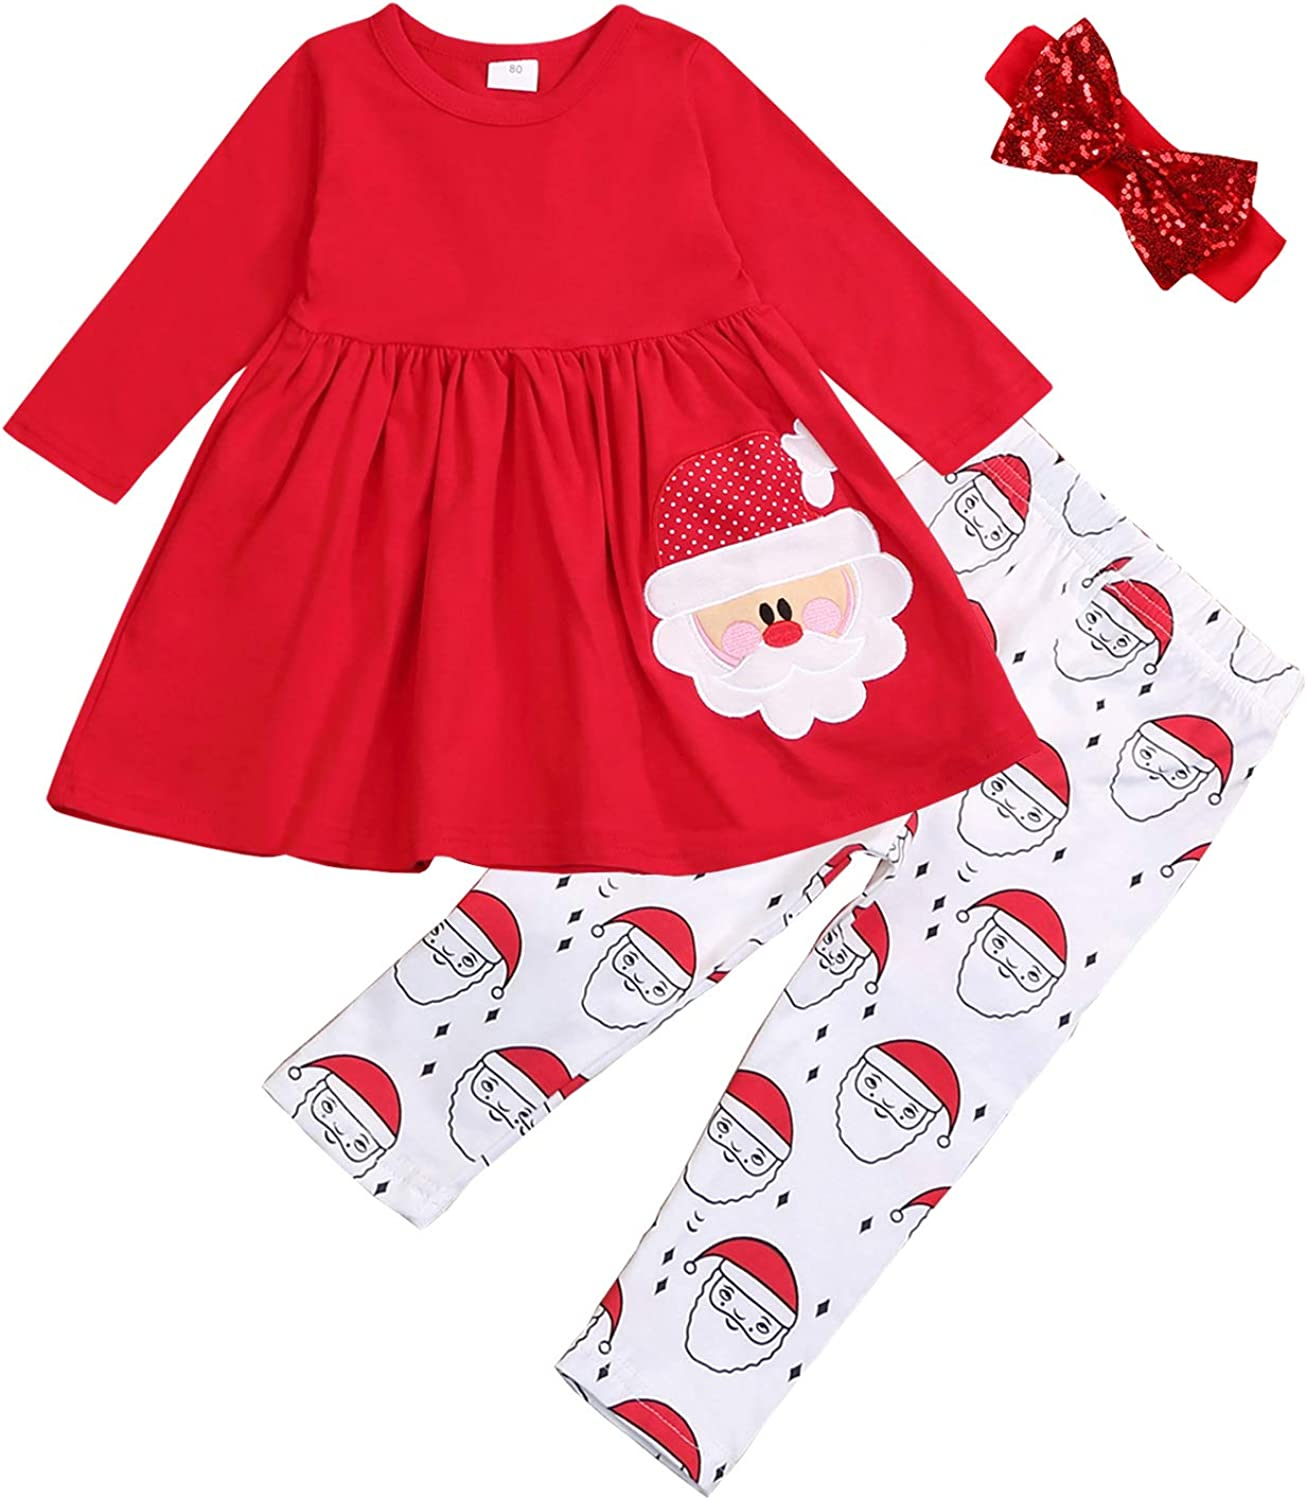 SEVEN YOUNG Superior Christmas Outfits Kids Dress Xmas Girls Baby Popular shop is the lowest price challenge Toddler